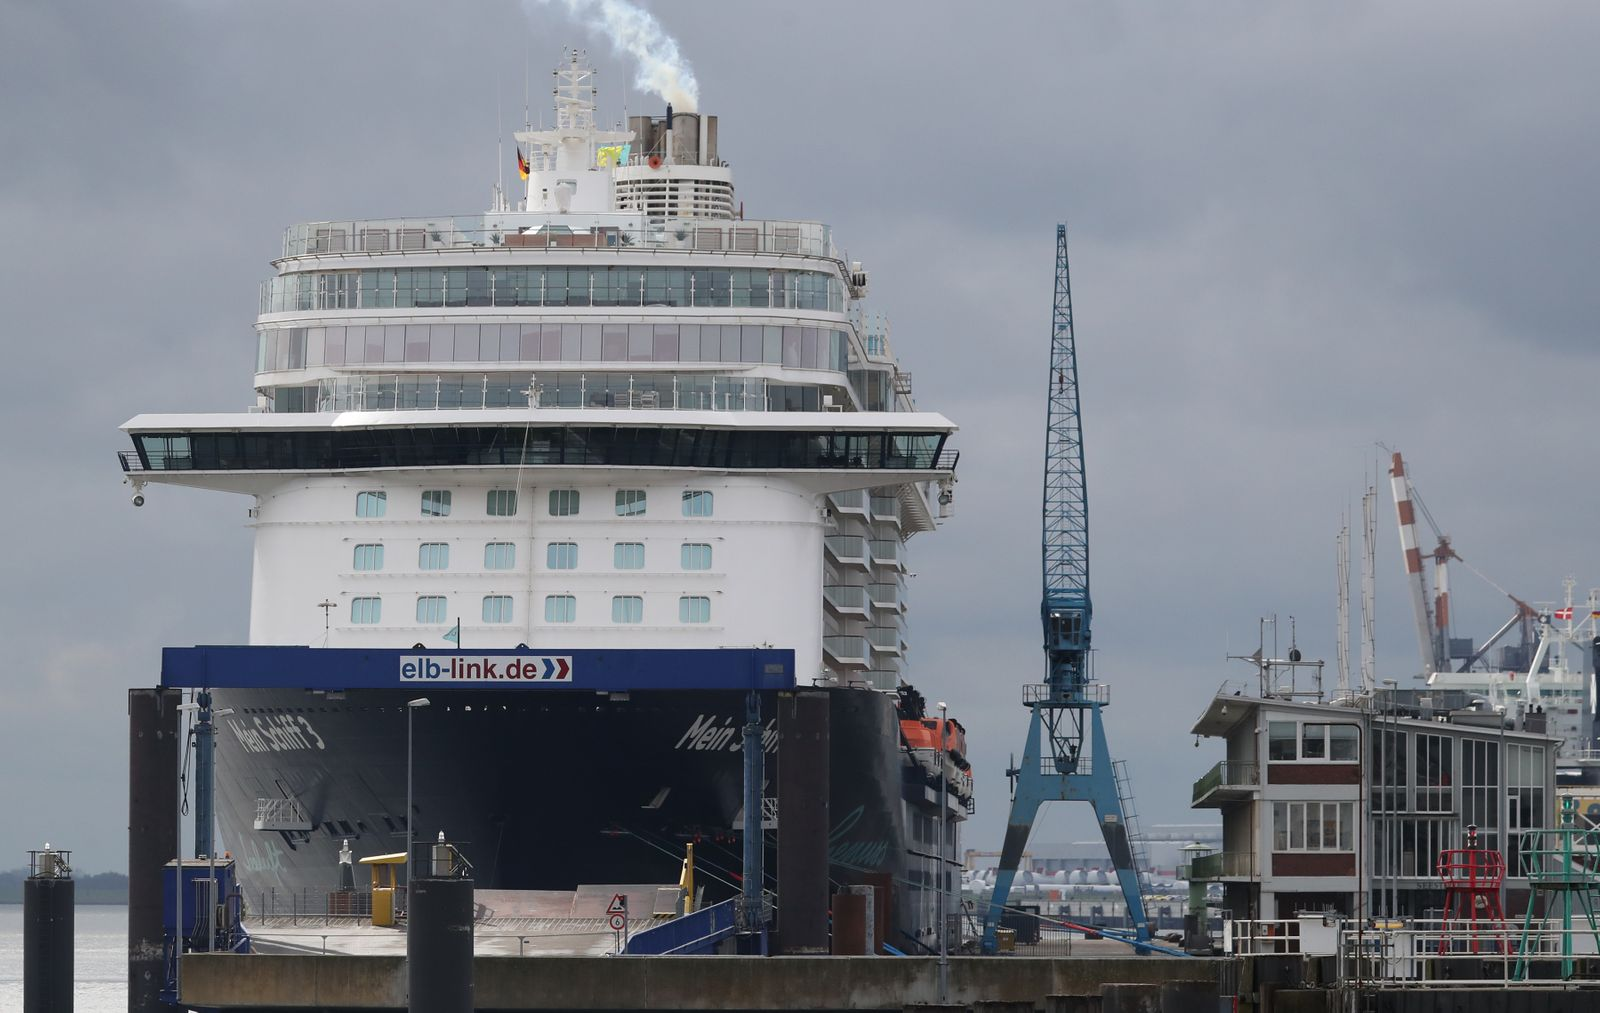 Cruise ship under quarantine in Cuxhaven, Germany - 02 May 2020